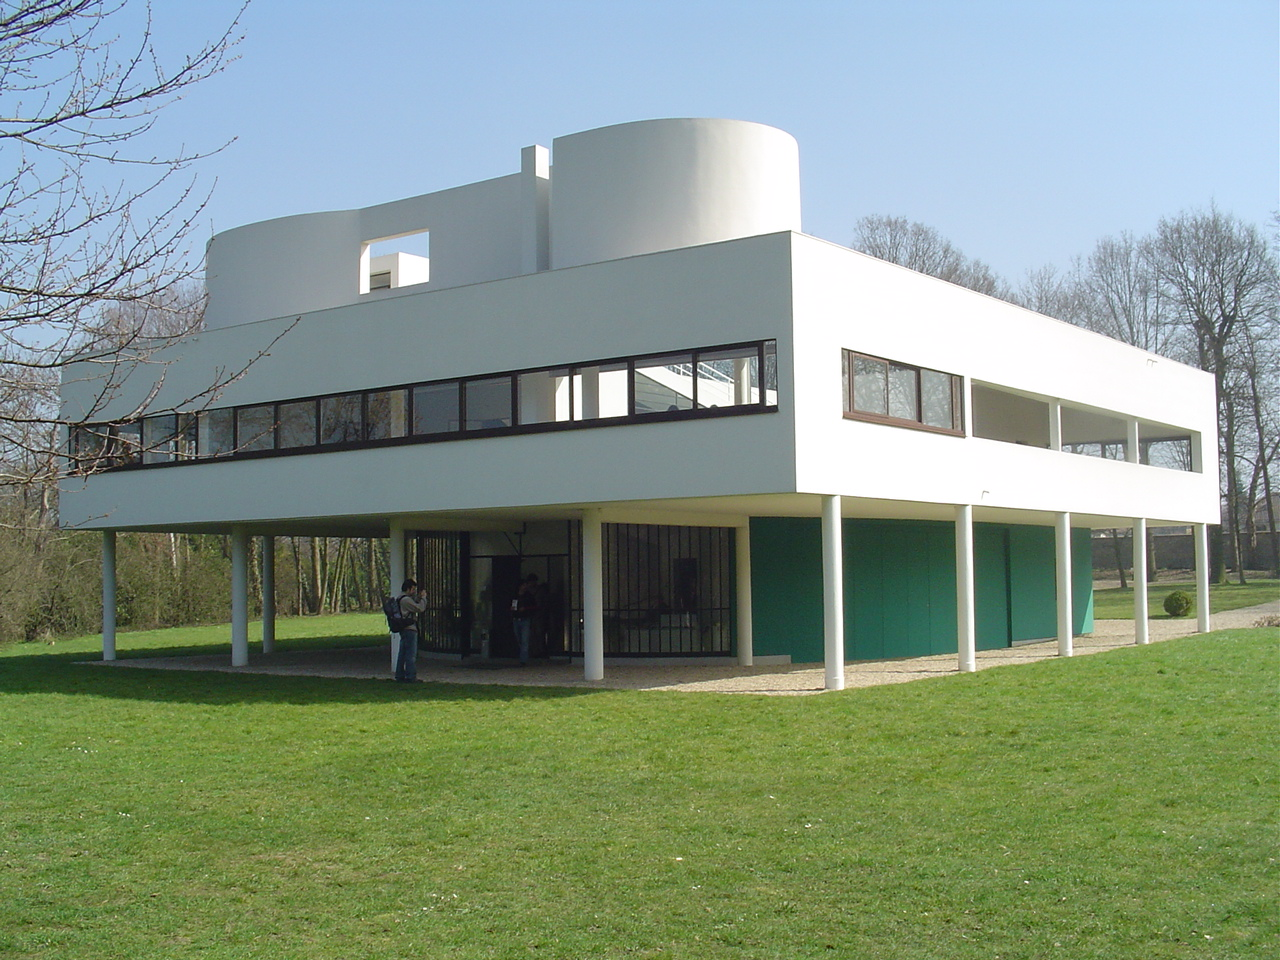 le corbusier villa savoye Apr 2, 2015 a new book recording thetrials and tribulations of le corbusier, villa savoye and its clients has been released, by the clients' grandson jean-marc savoye and illustrator jean-philippe delhomme (le corbusier, villa savoye, modernist architecture, jean-marc savoye, jean-philippe delhomme, illustration.